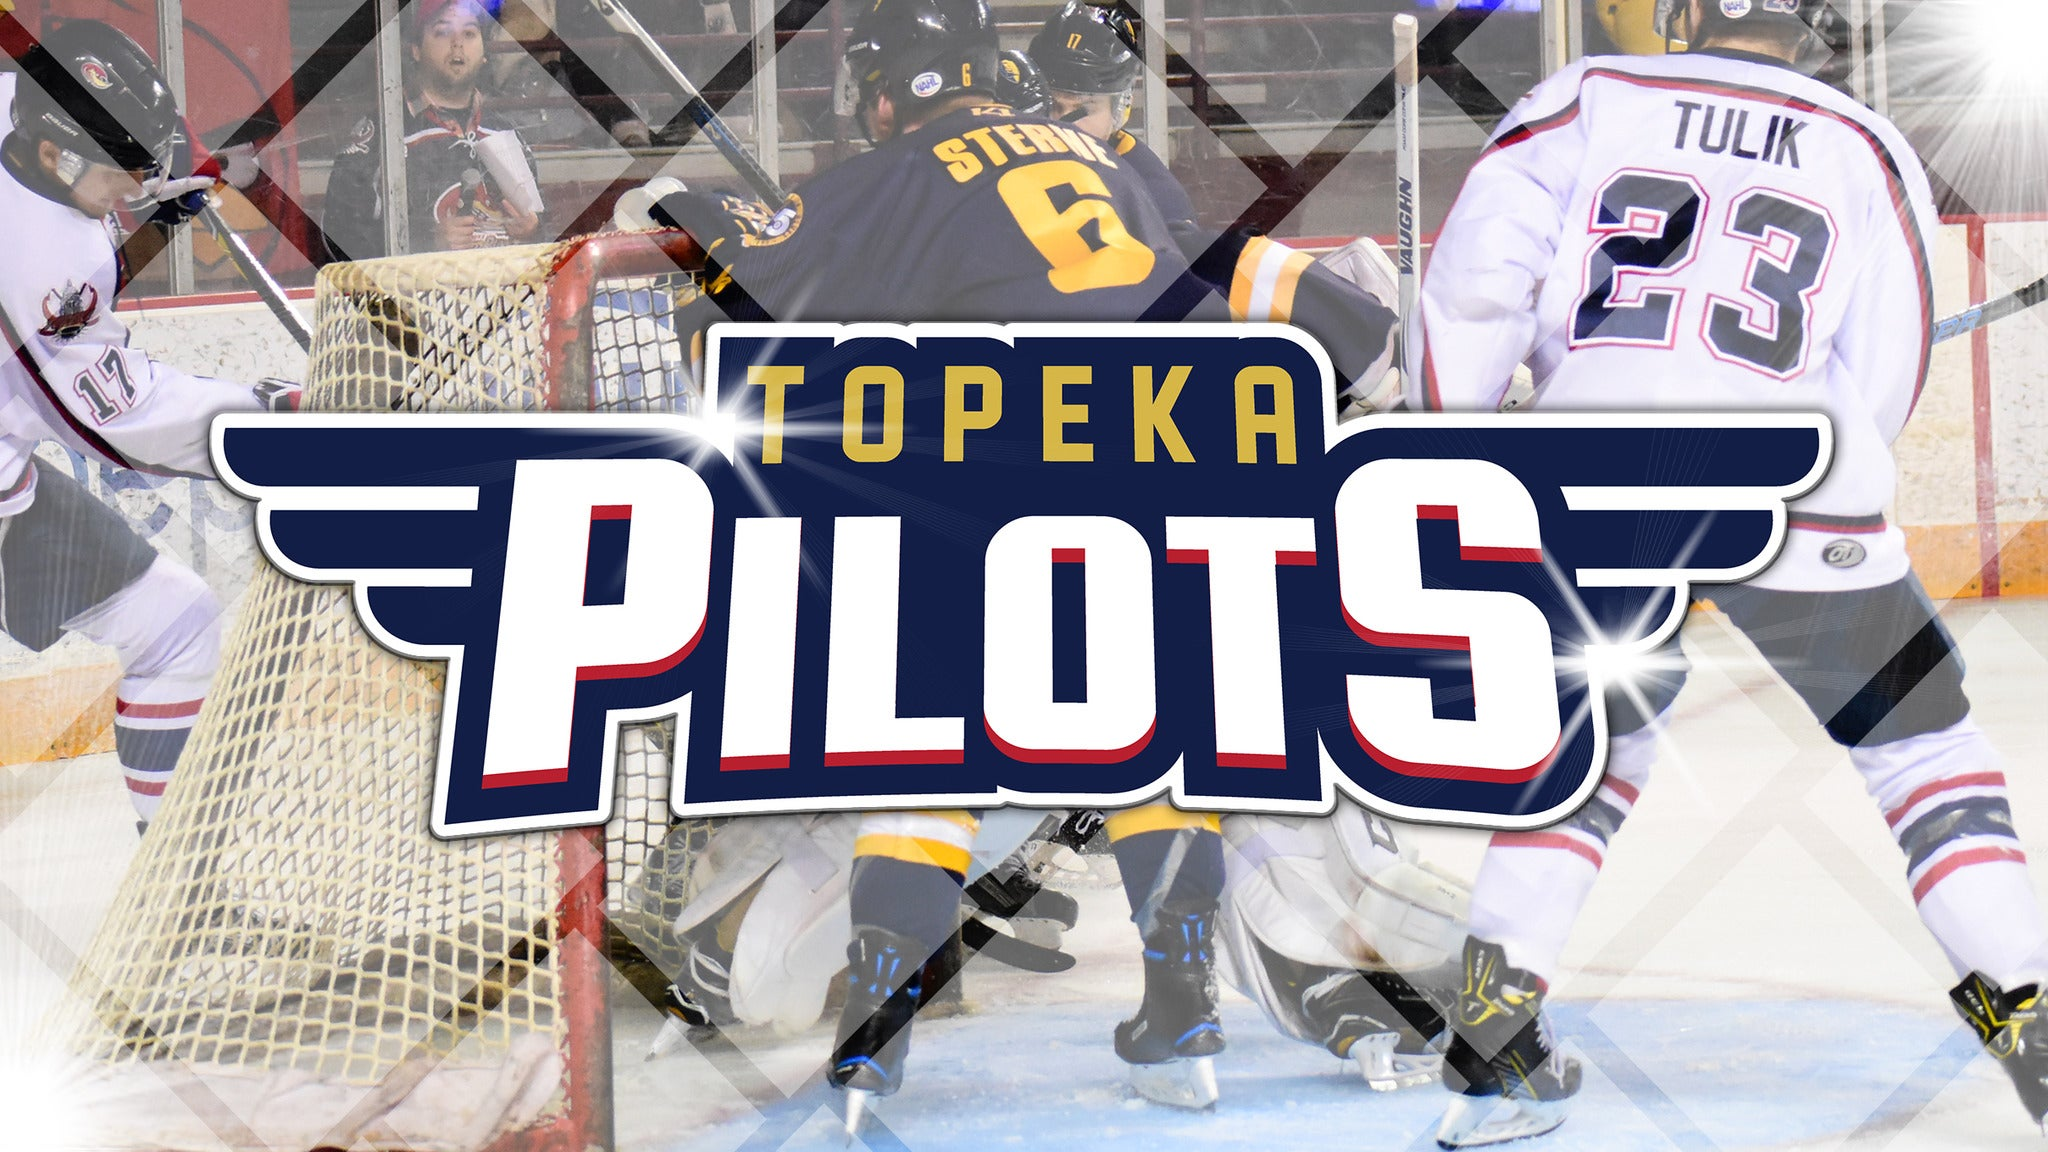 Topeka Pilots vs. Fairbanks Ice Dogs at Kansas Expocentre